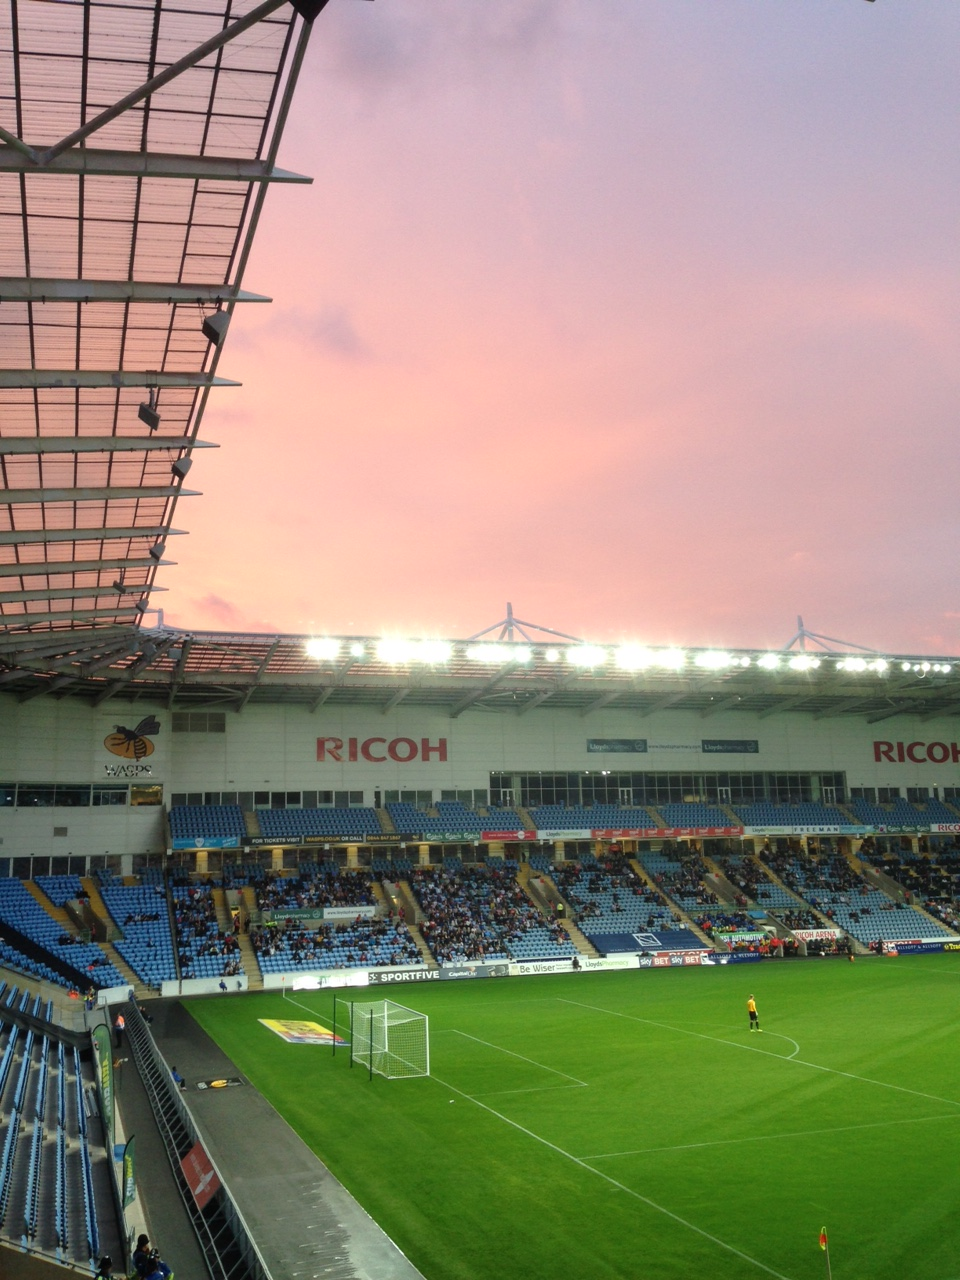 Ethereal Conditions at the Ricoh